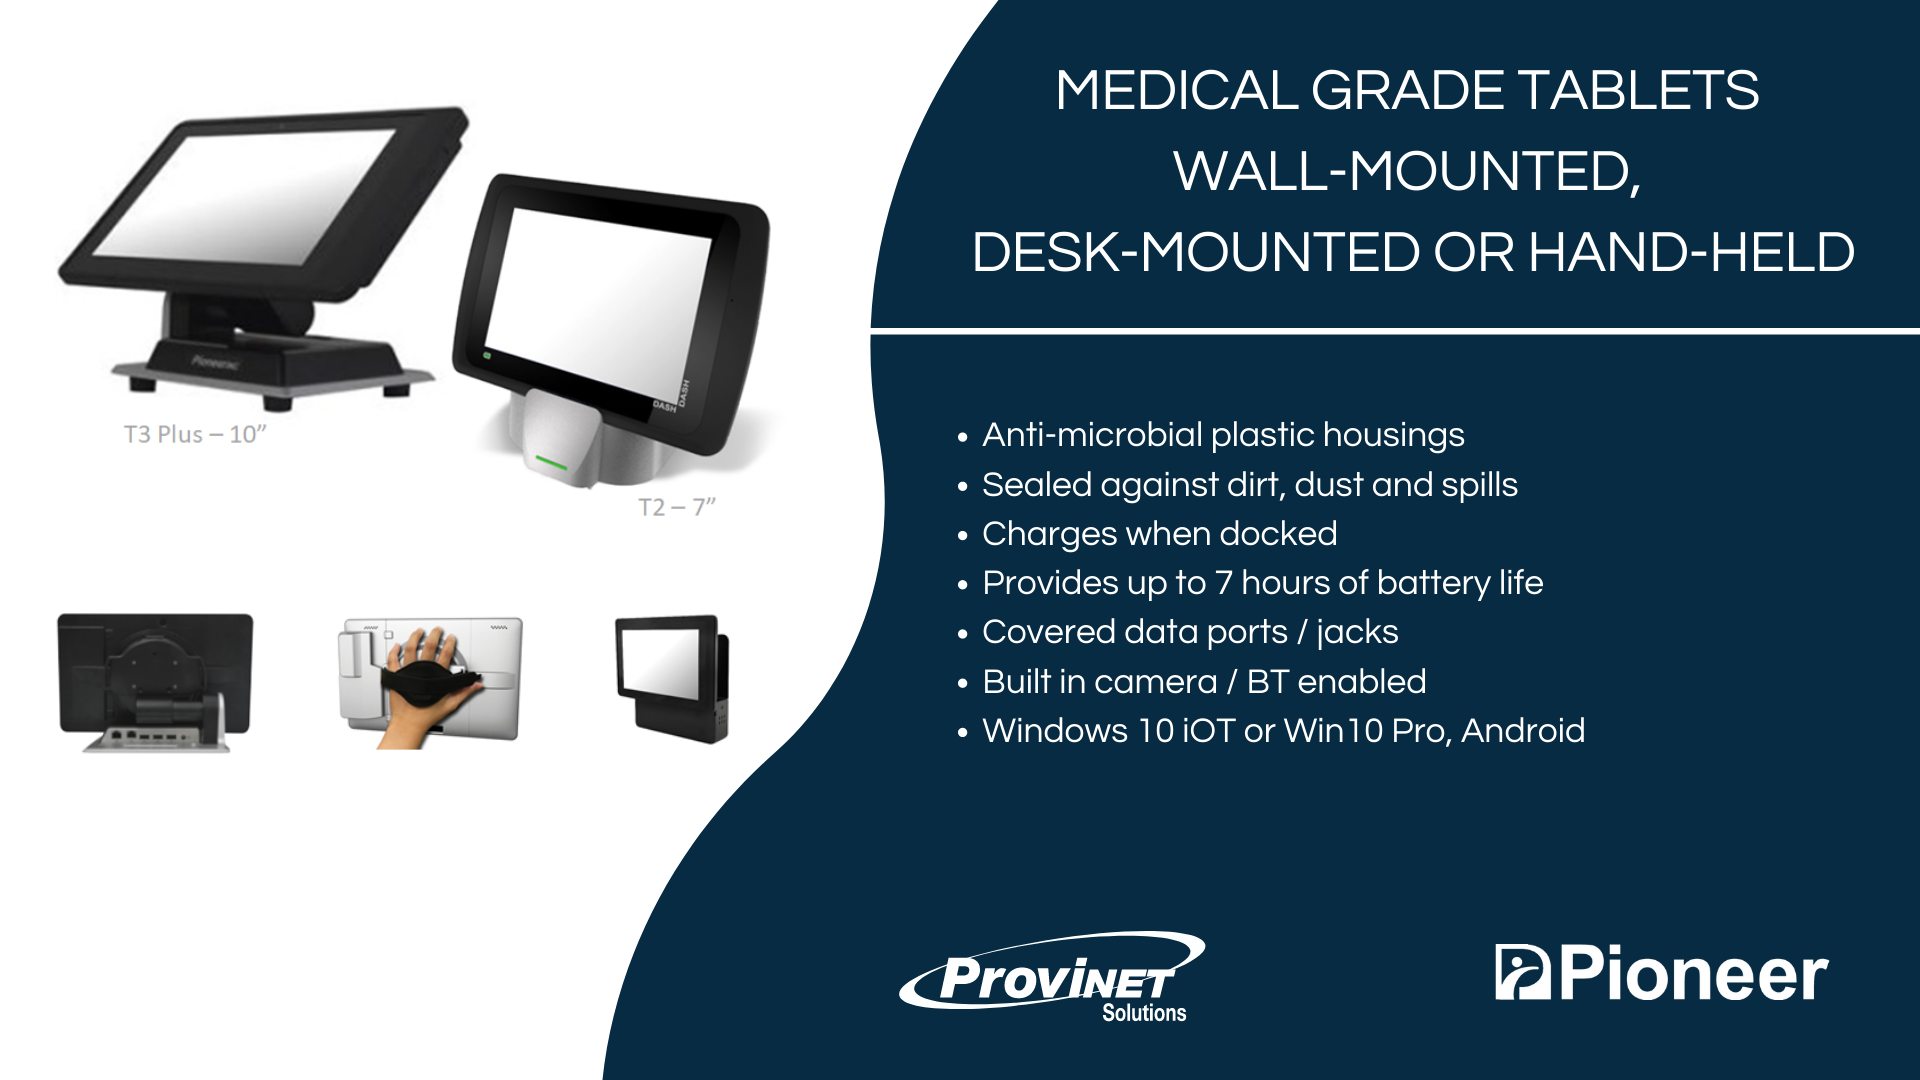 Medical Grade Tablets Wall-Mounted, Desk-Mounted or Hand-Held